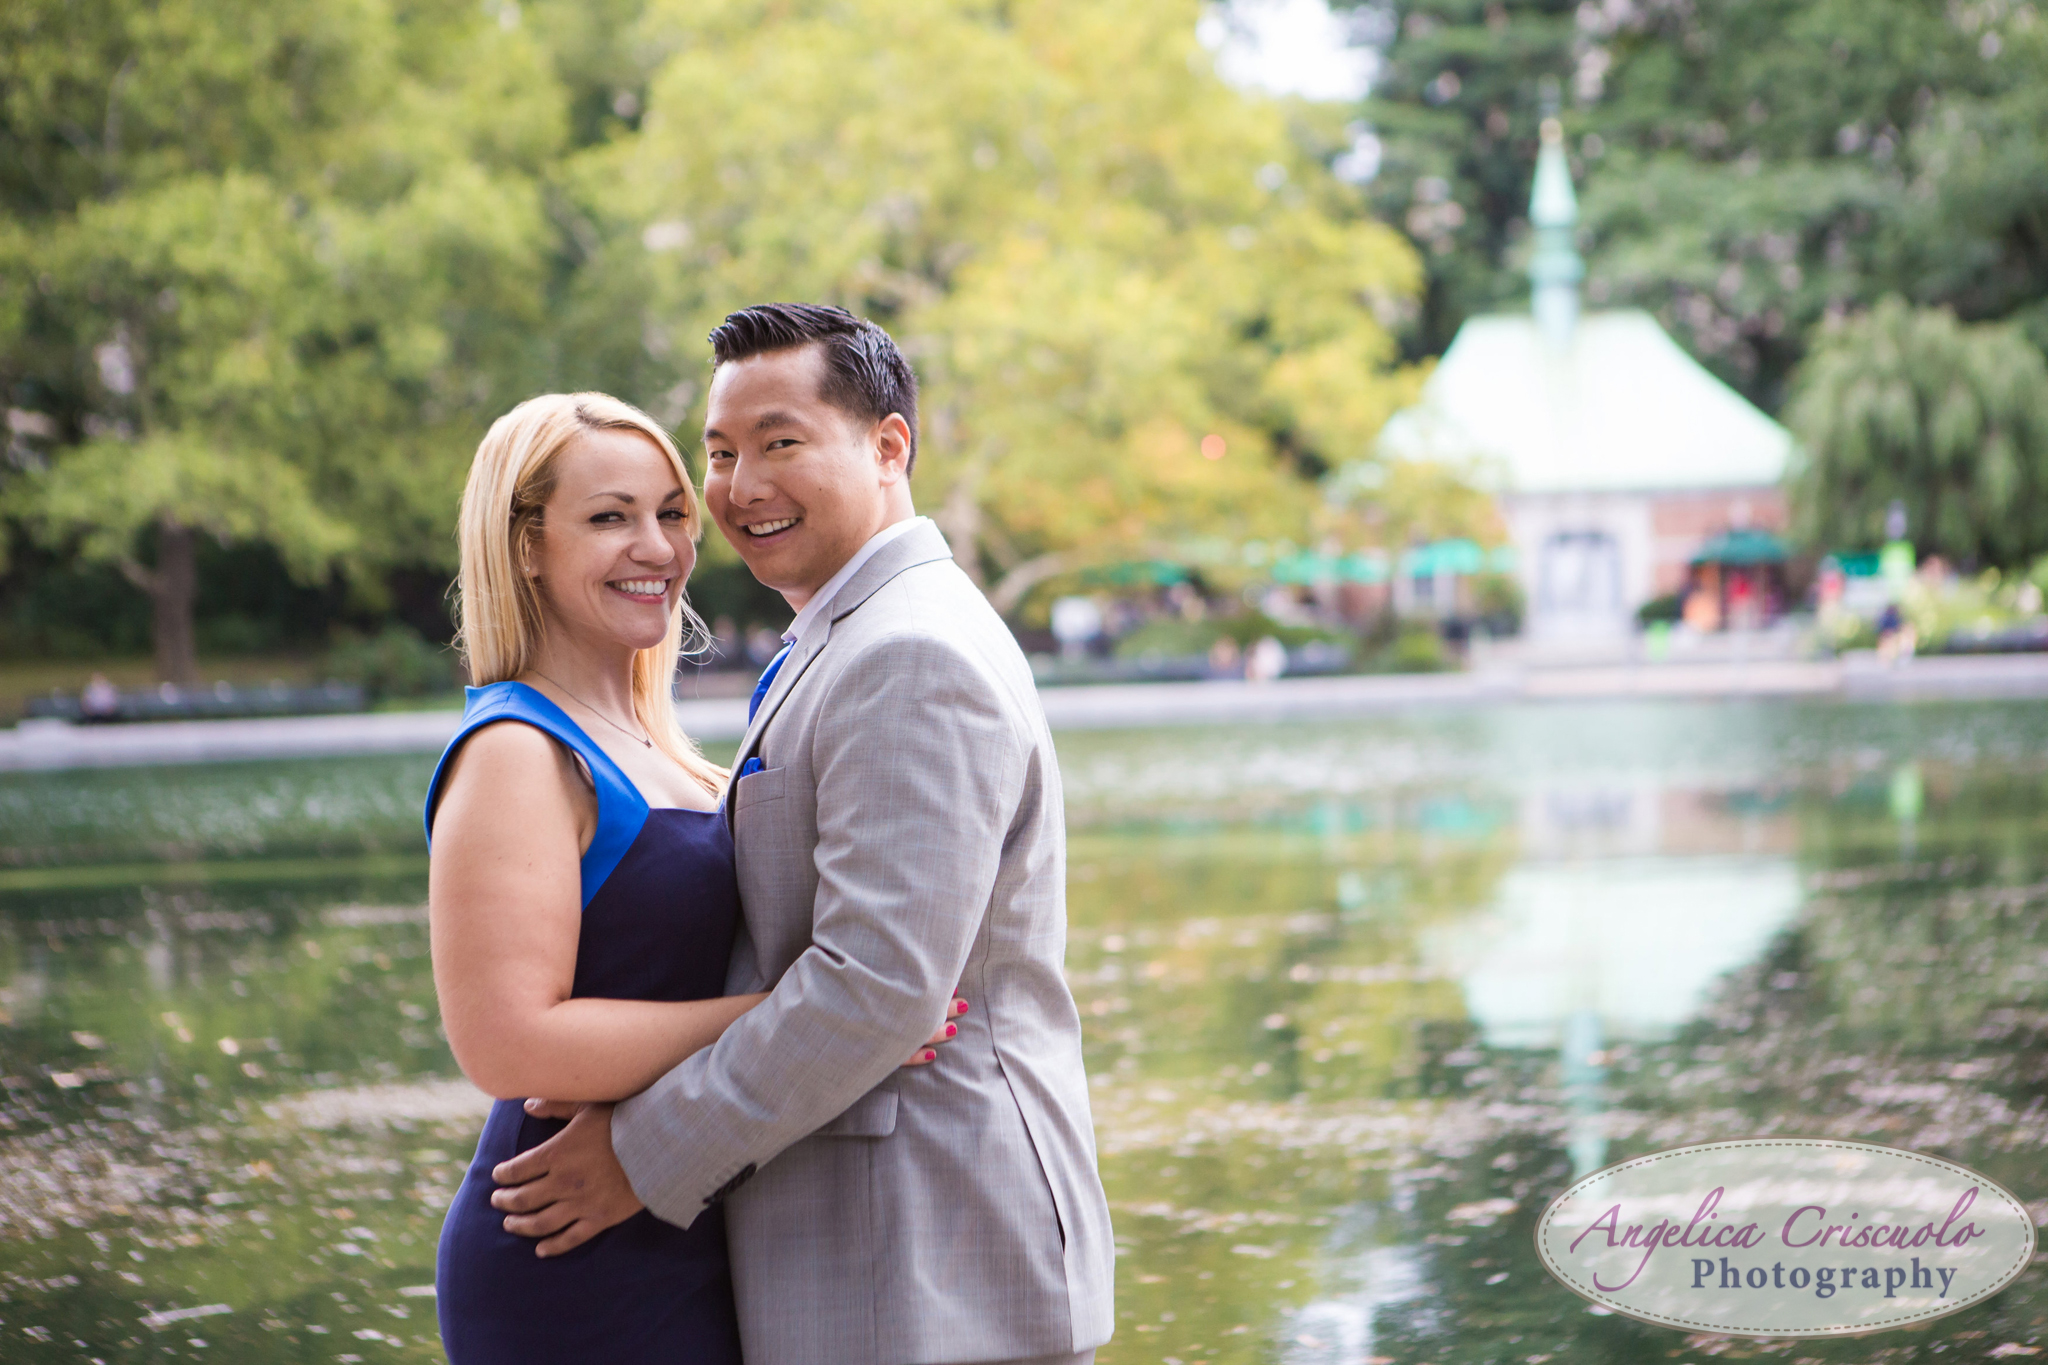 New York Engagement Photo ideas Boathouse Central Park